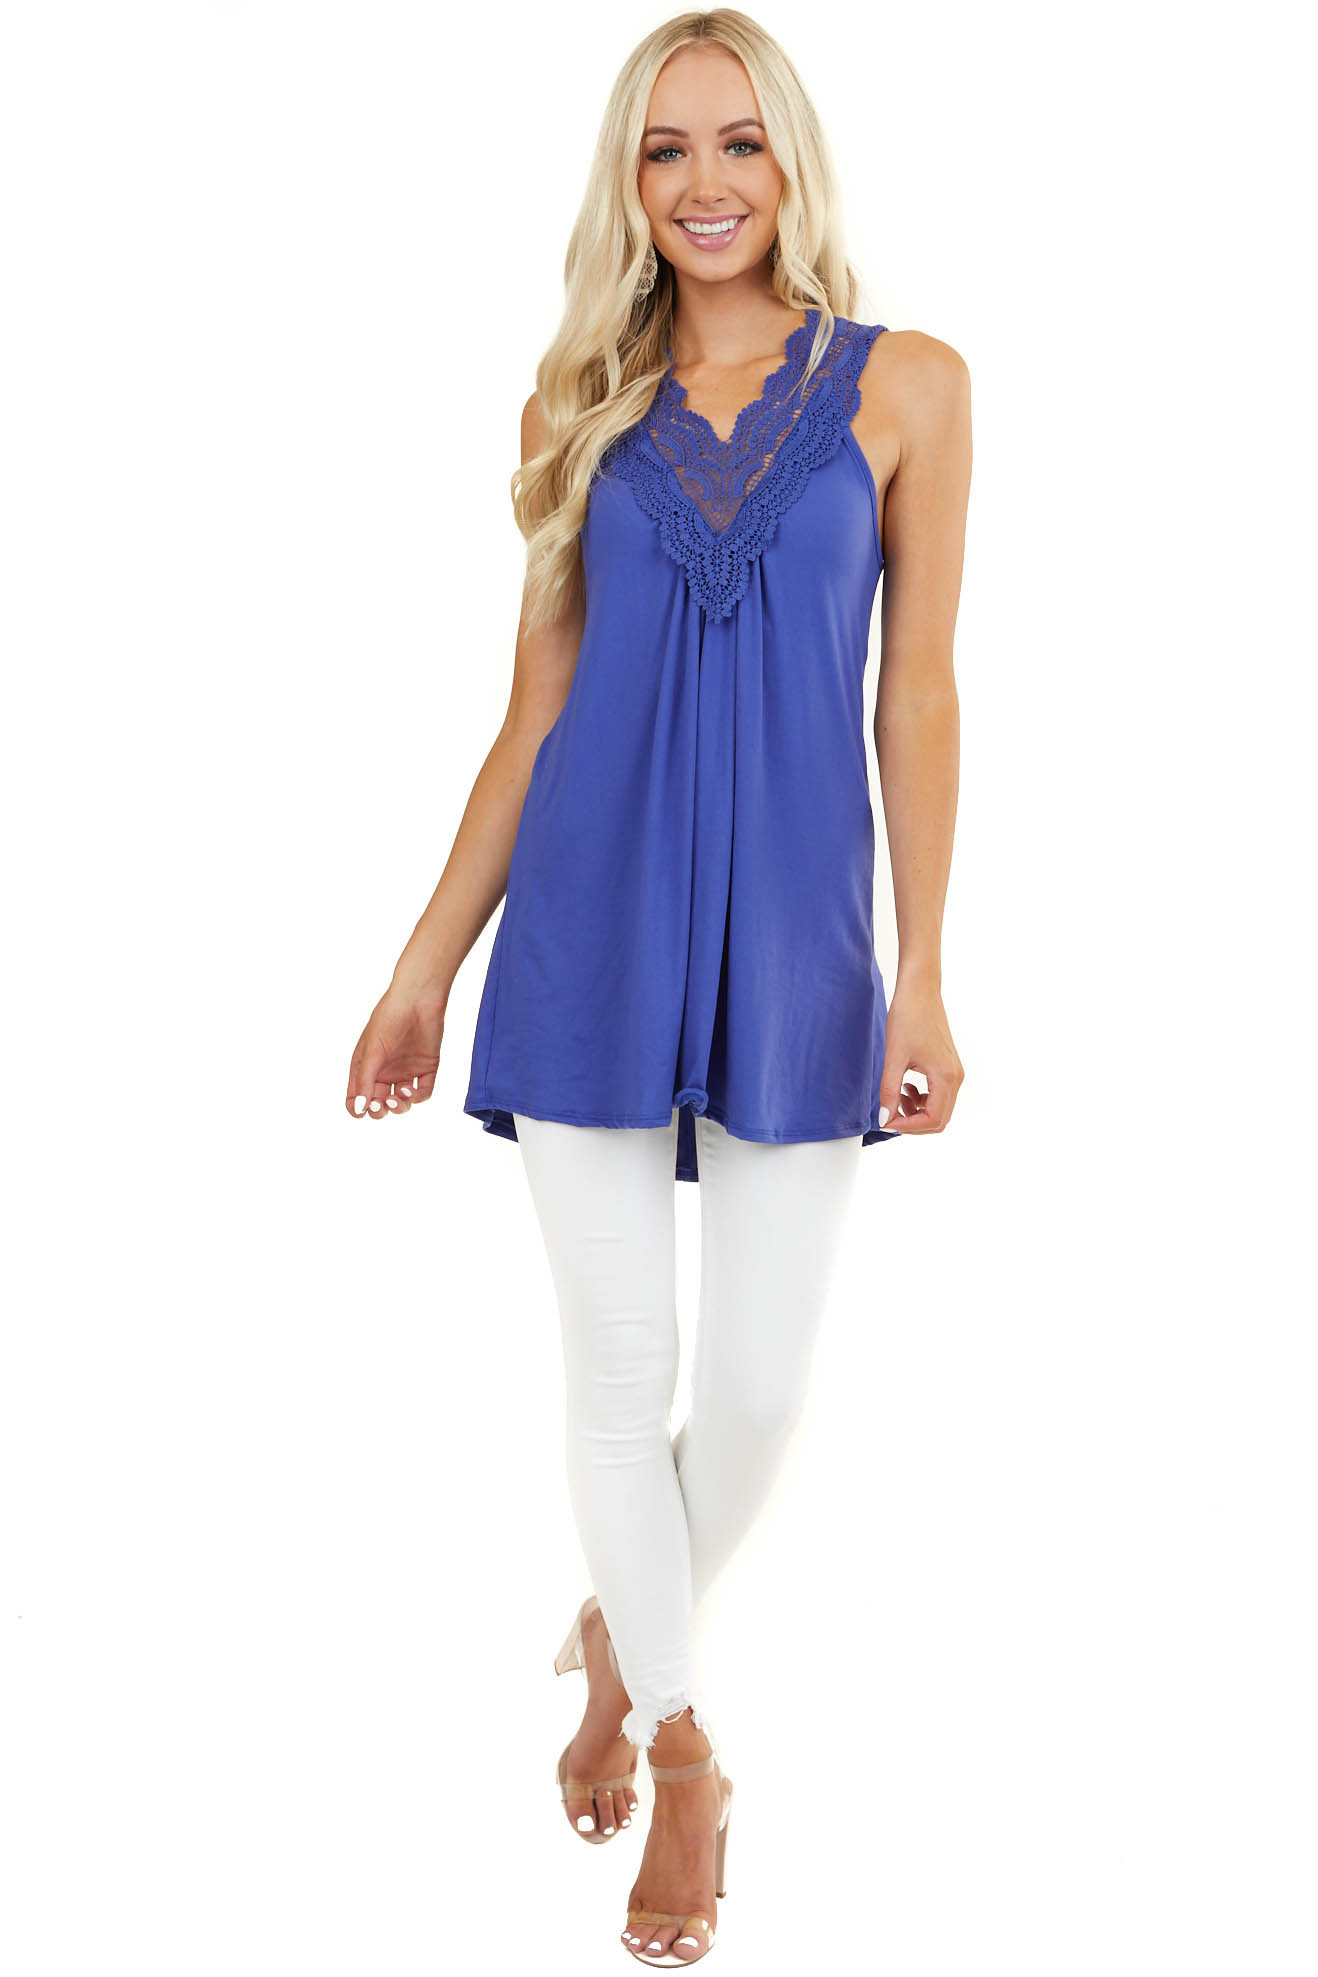 Royal Blue Tank Top with Lace Trim Details and Keyhole Back